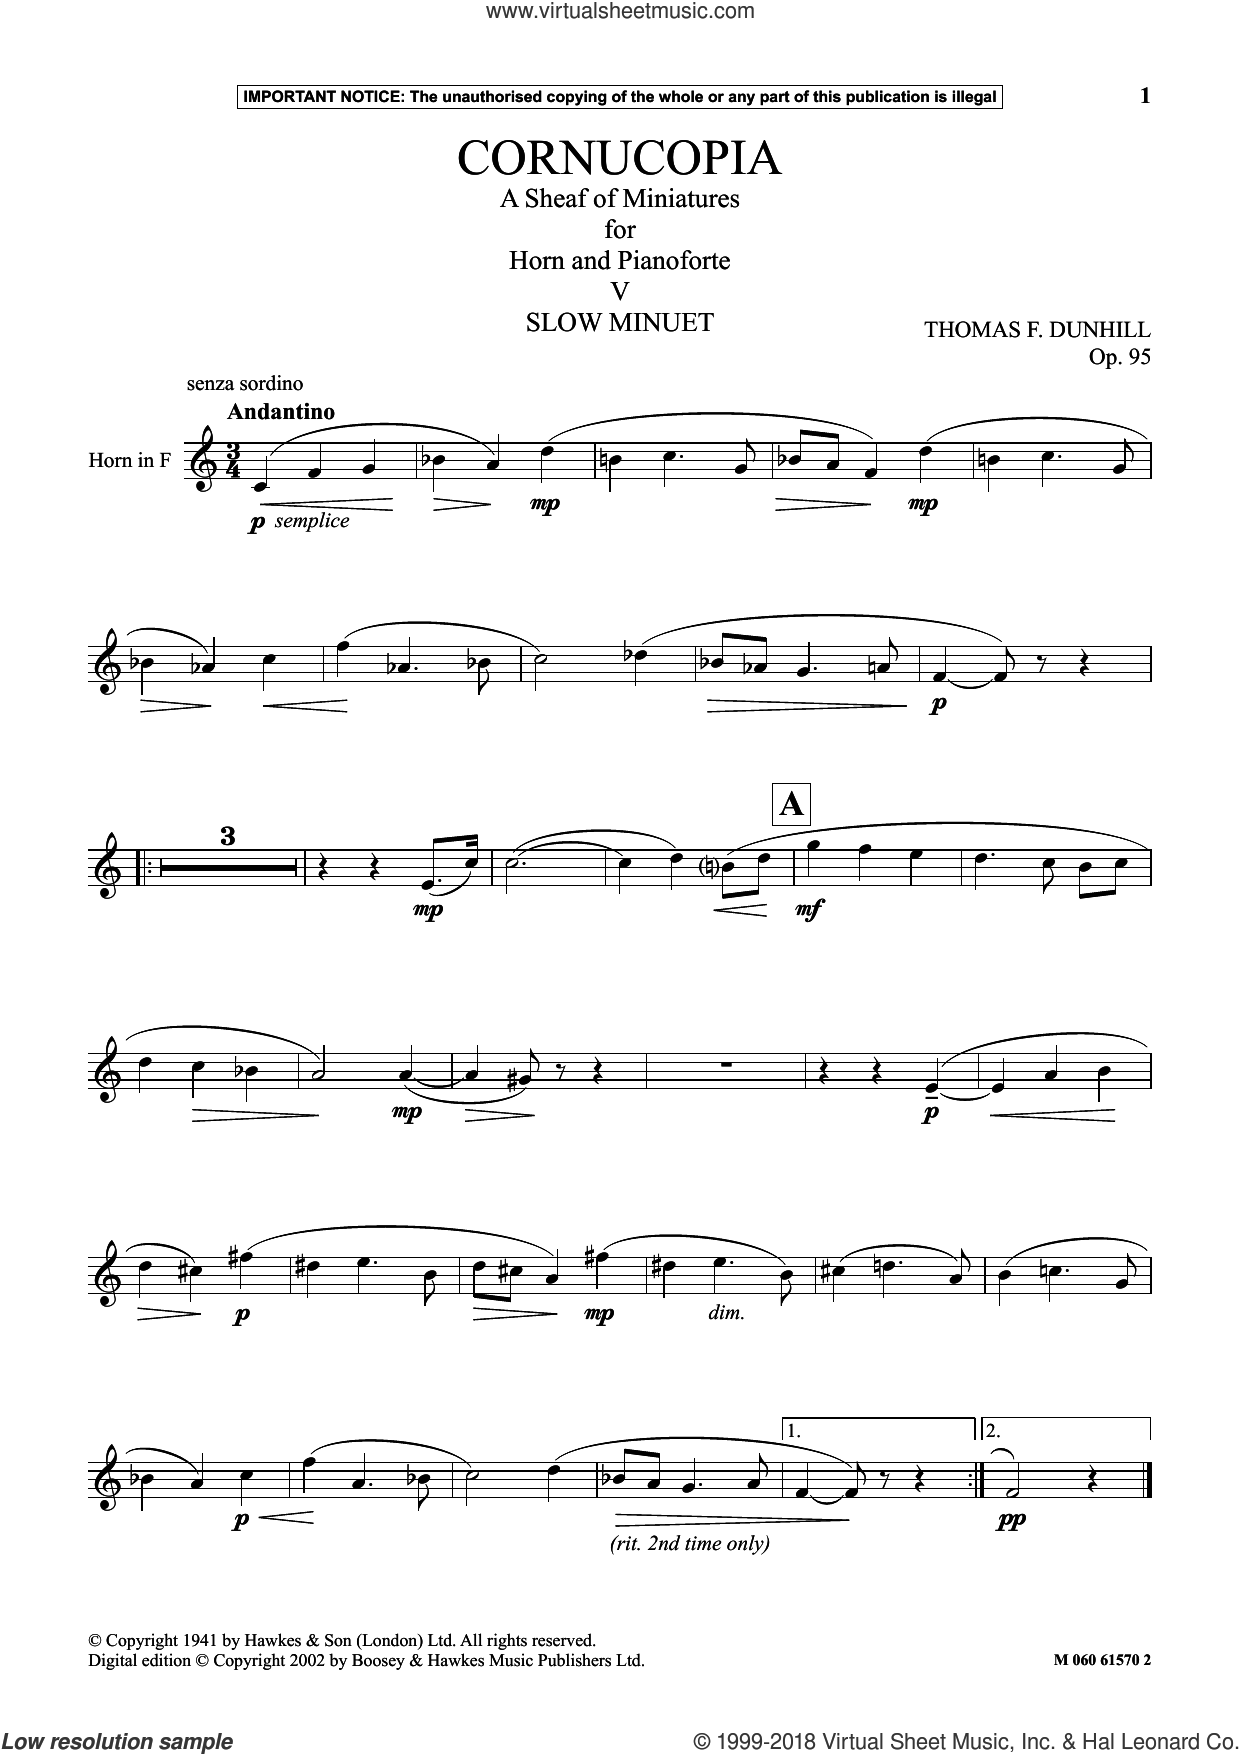 Cornucopia: A Sheaf Of Miniatures For Horn And Pianoforte (V) sheet music for horn solo by Thomas F. Dunhill, classical score, intermediate skill level